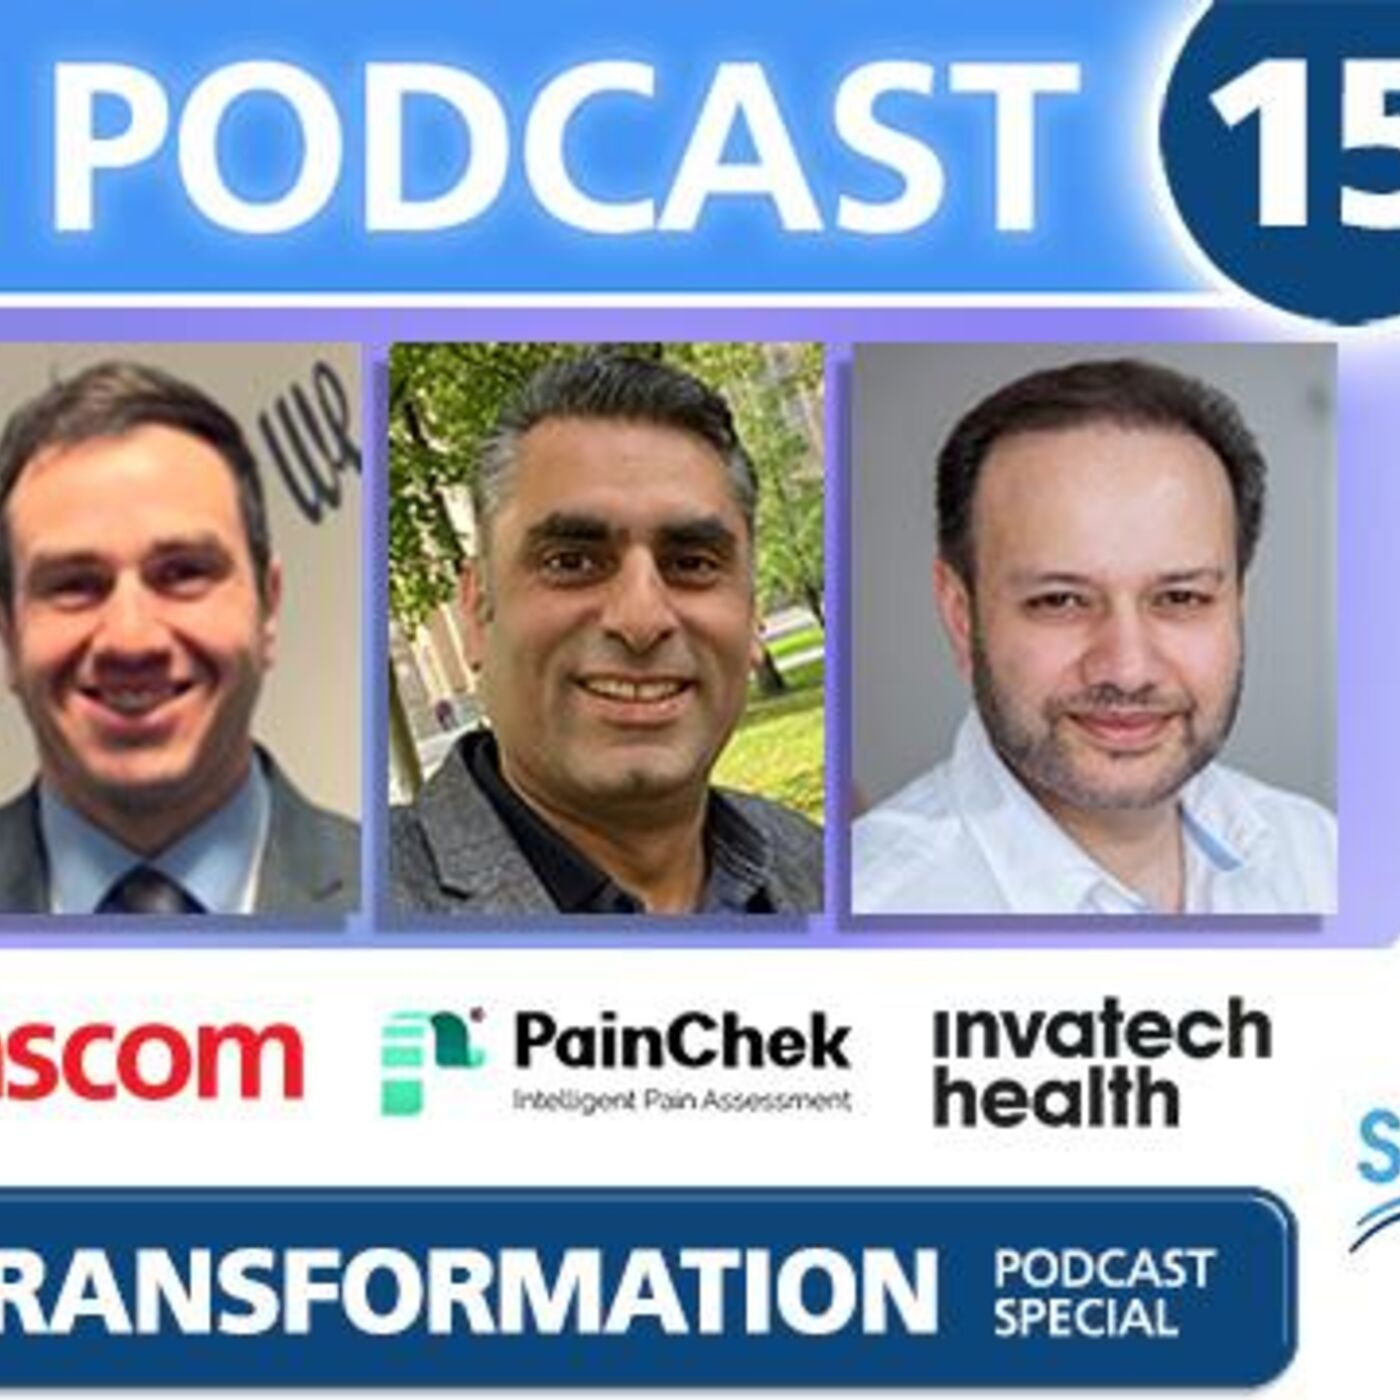 How to digitalise your care home - Digital Transformation Podcast special